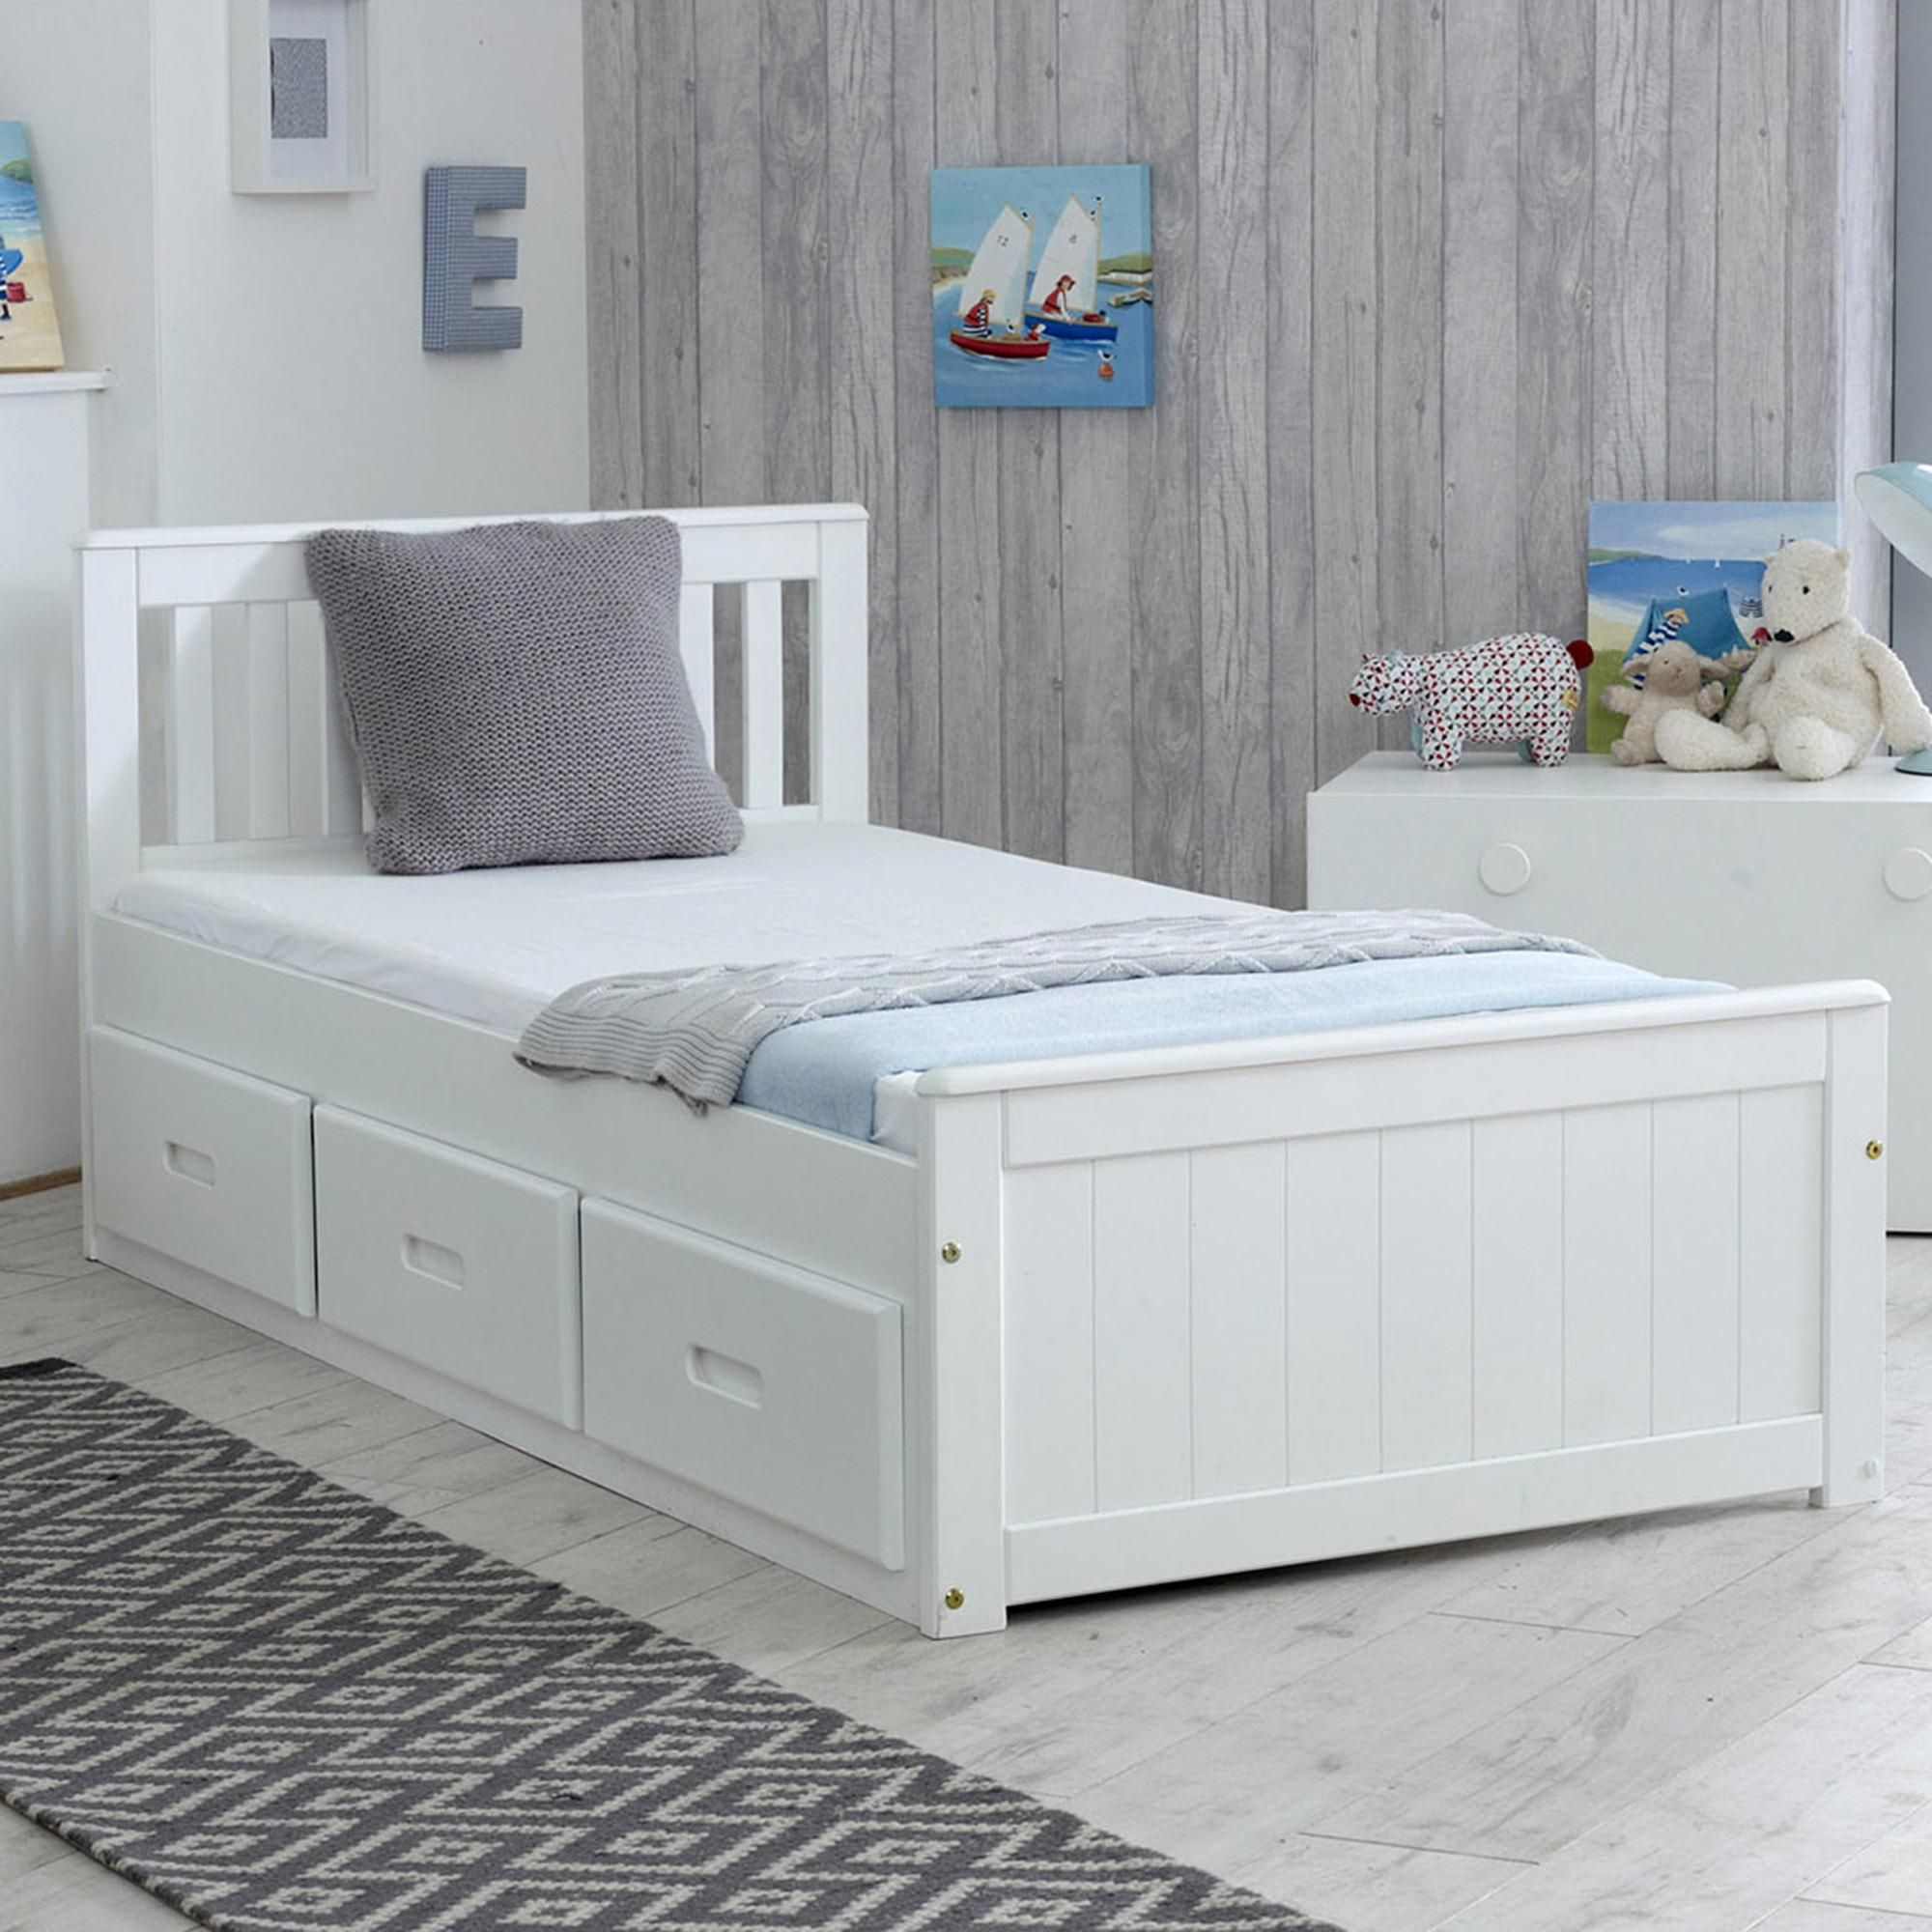 Mission White Storage Bed In 2020 Single Beds With Storage Bed Frame With Storage Bed Storage